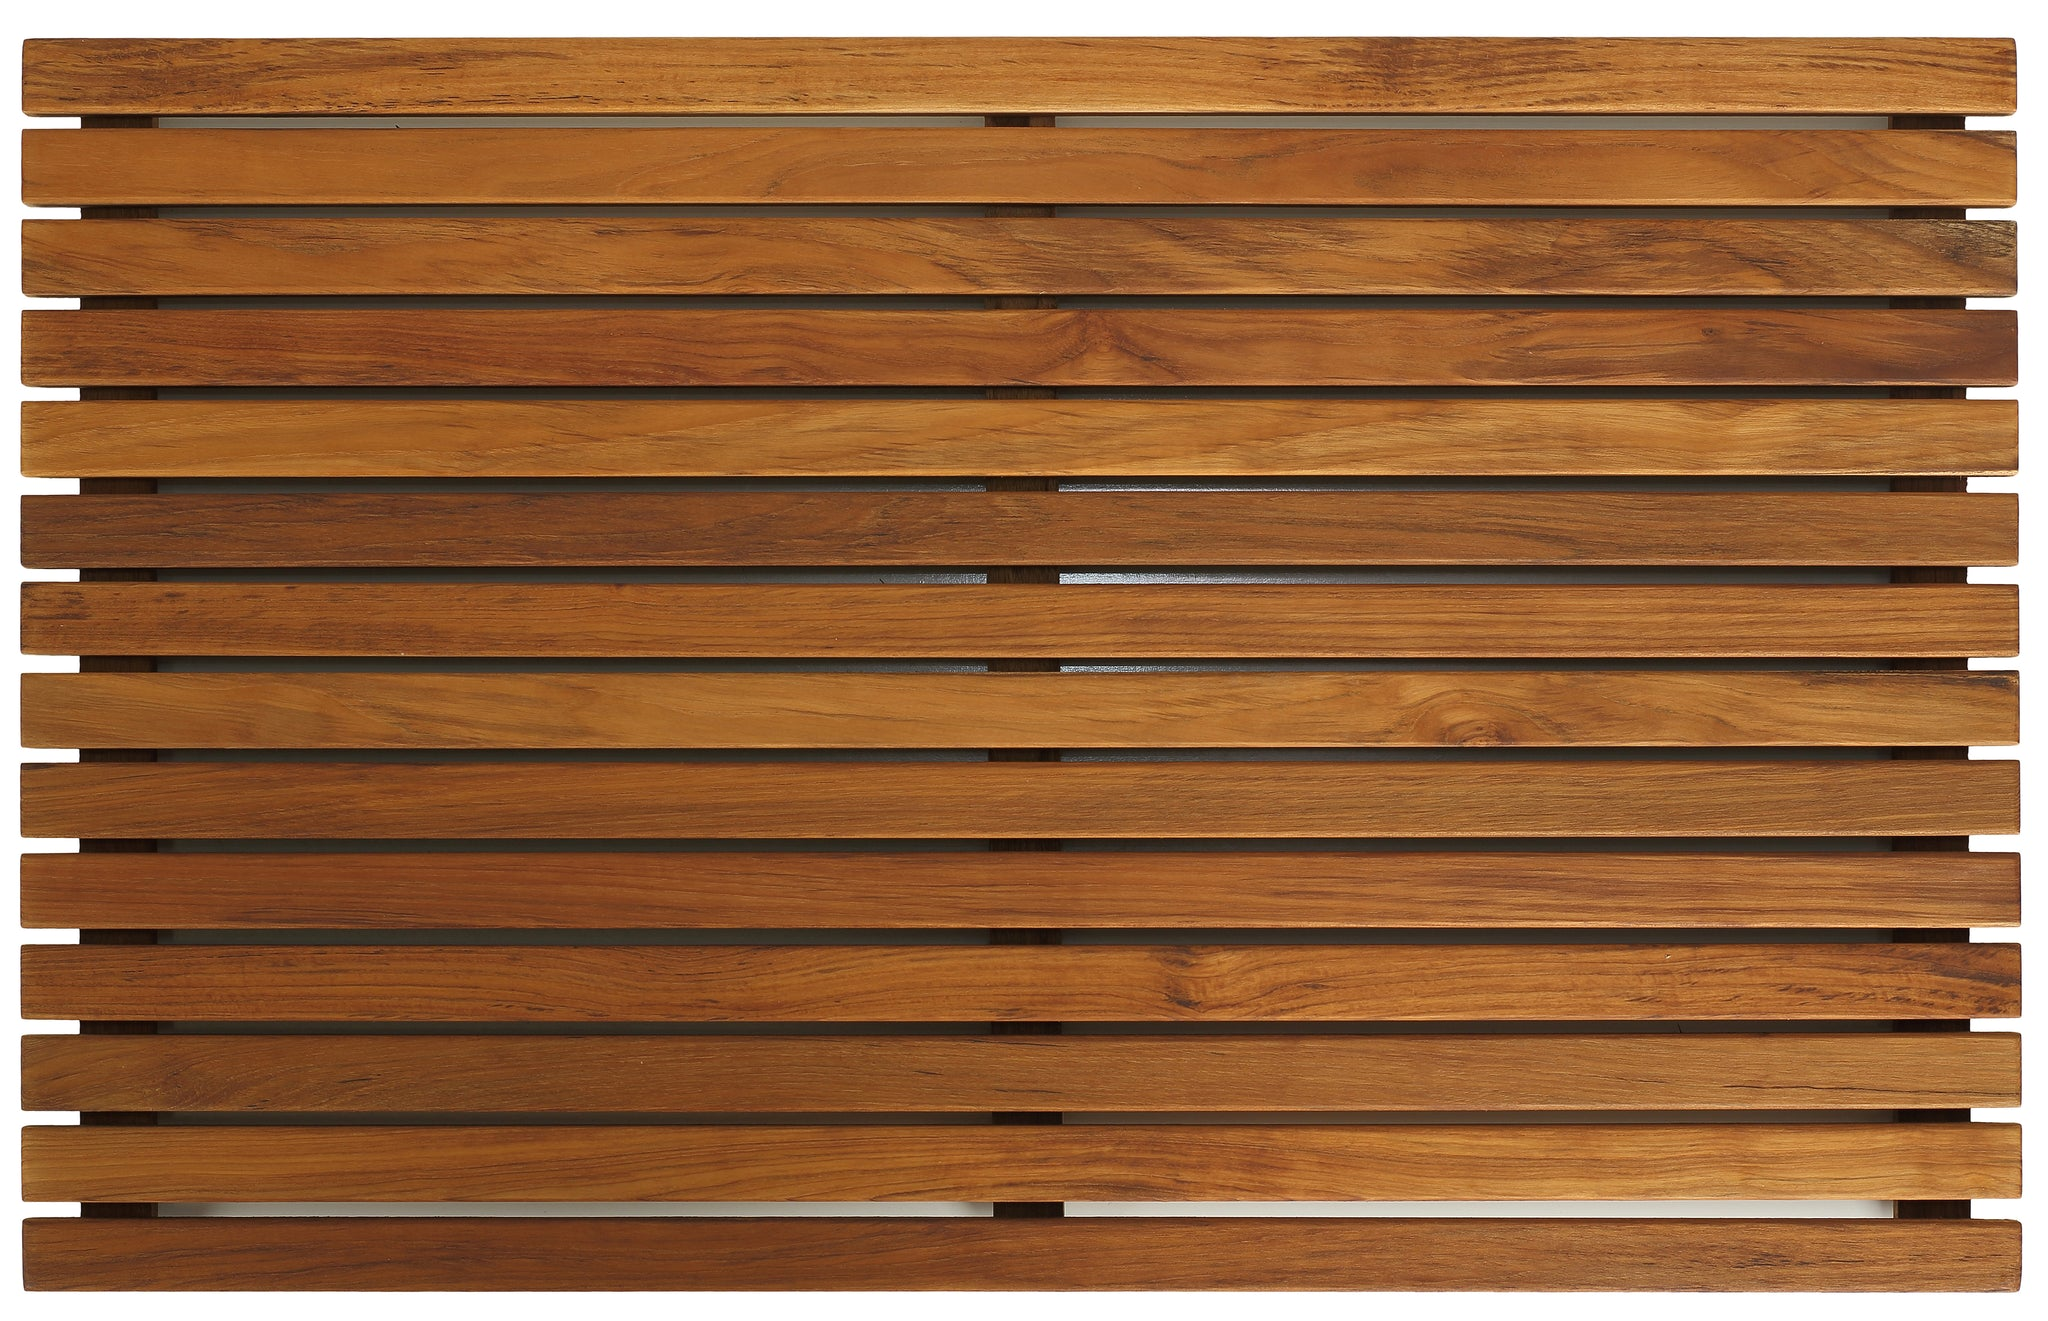 "Bare Decor Zen Shower, Spa, Door Mat in Solid Teak Wood and Oiled Finish, Large: 31.5"" x 19.5"""